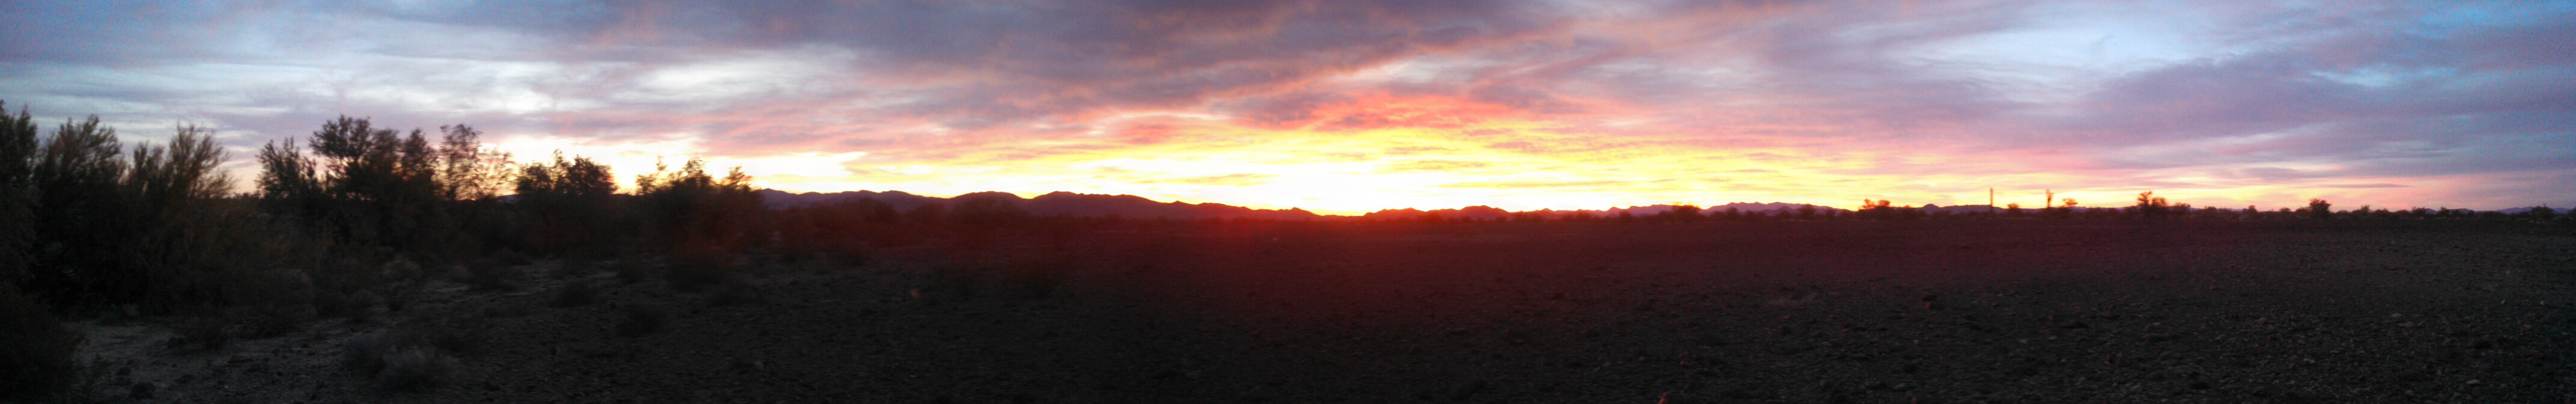 Another beautiful sunset in the desert